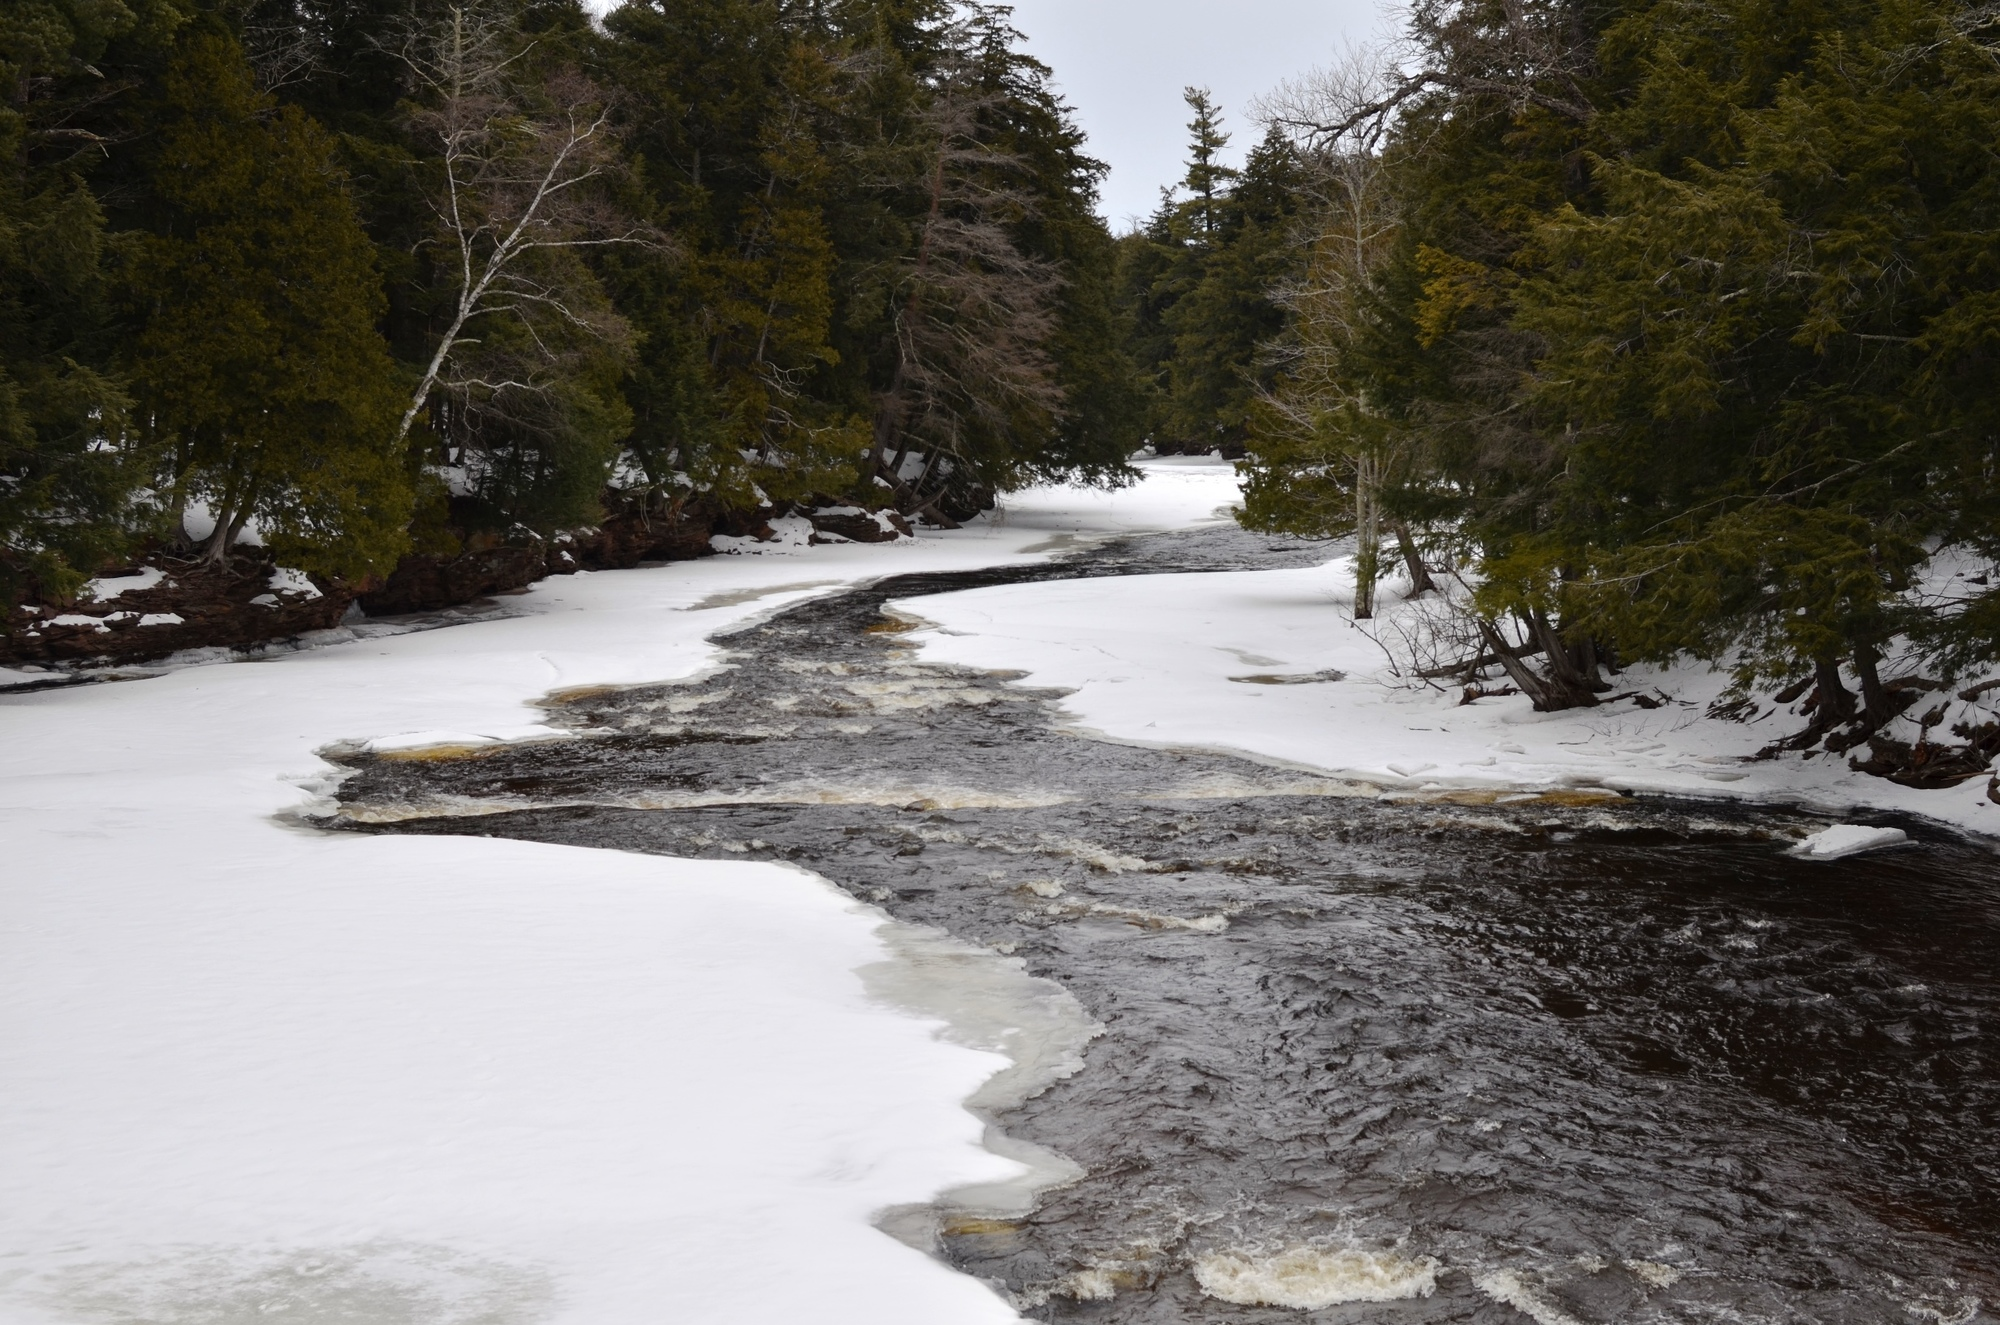 The Presque Isle River flows through a wintry landscape toward its mouth at Lake Superior at Porcupine Mountains Wilderness State Park.